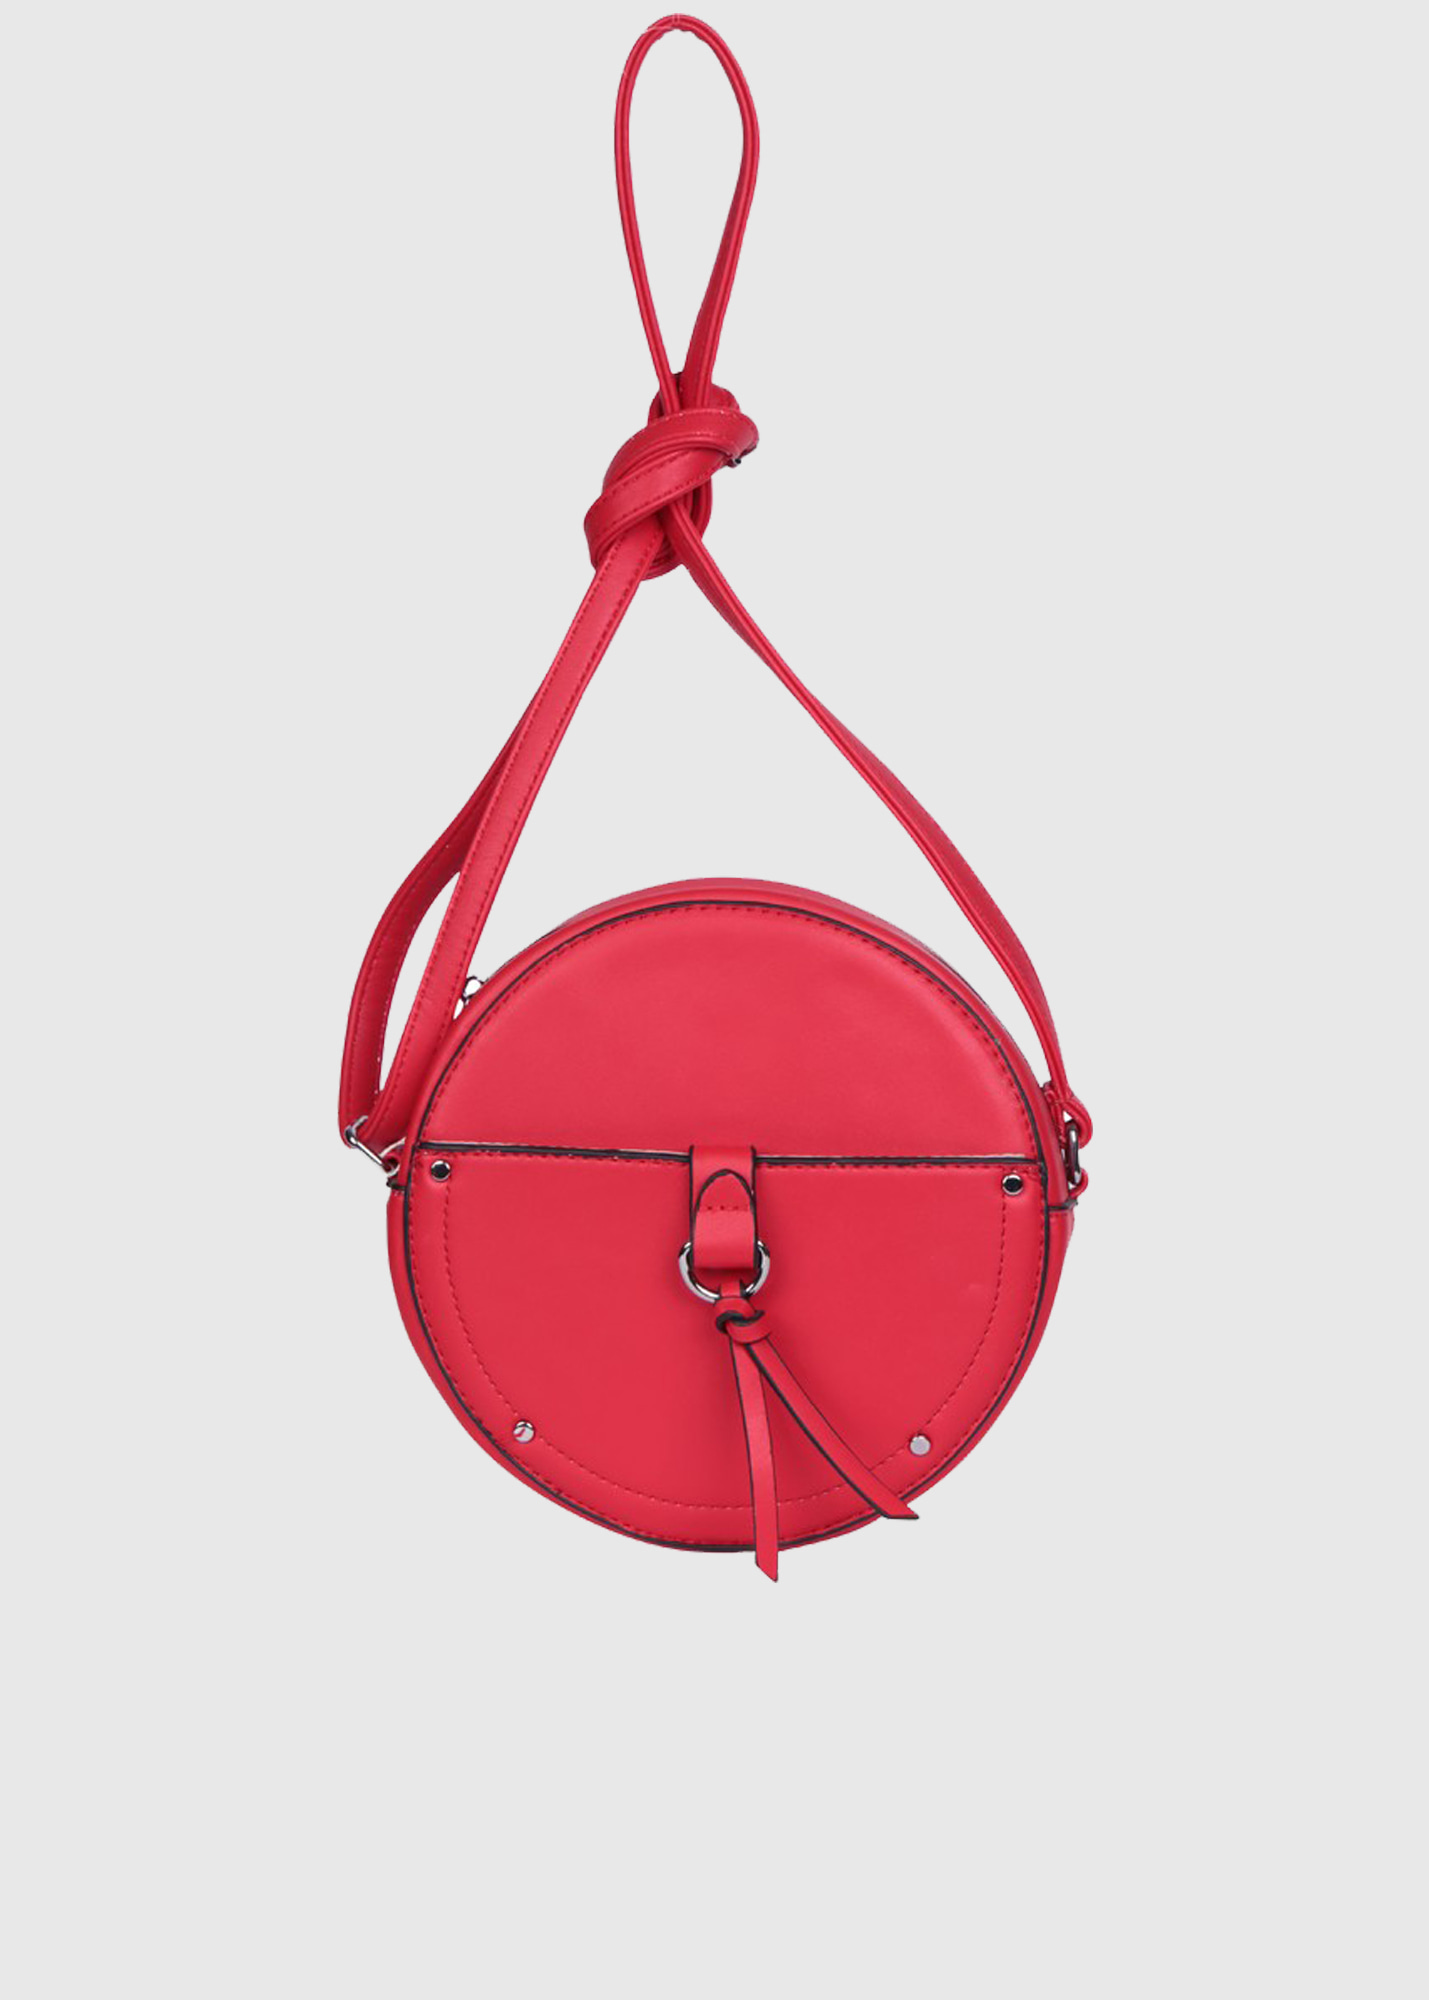 Carana women's round red bag